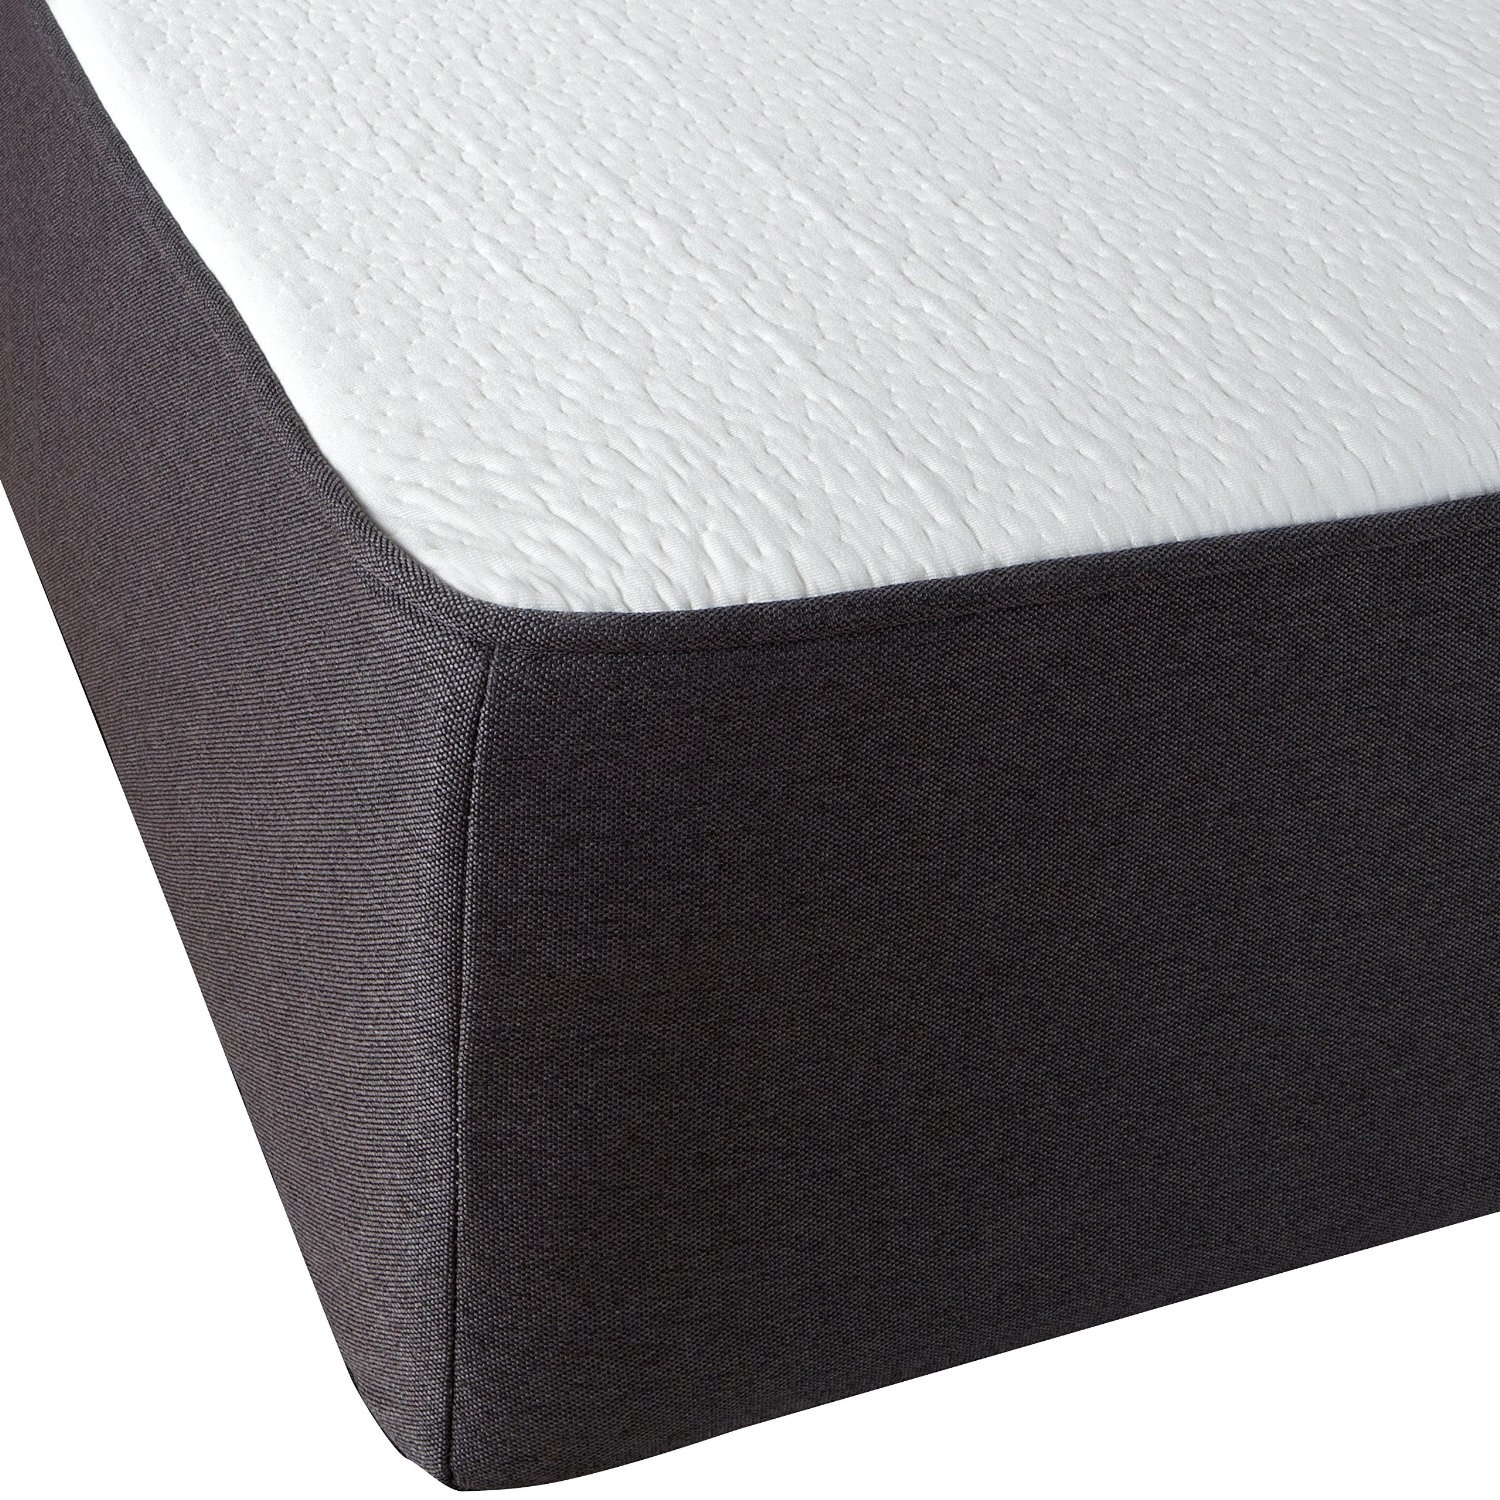 a model that sleeps cool thanks to gel particles encased in its memory foam